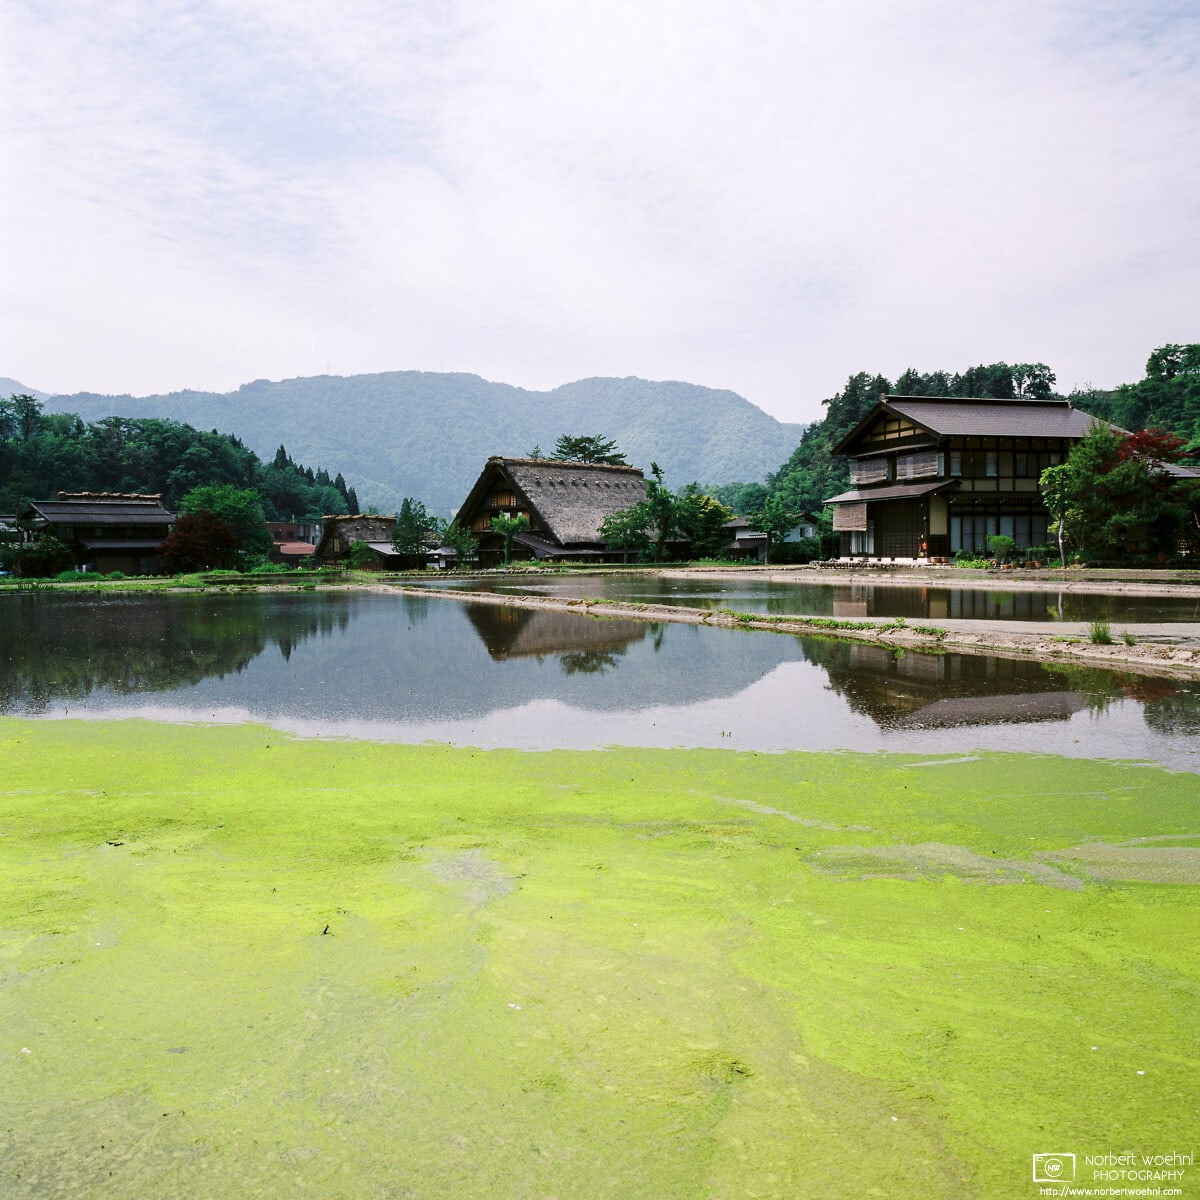 A colorful end-of-May impression from Ogimachi Village in Shirakawa-gō, Gifu Prefecture, Japan.